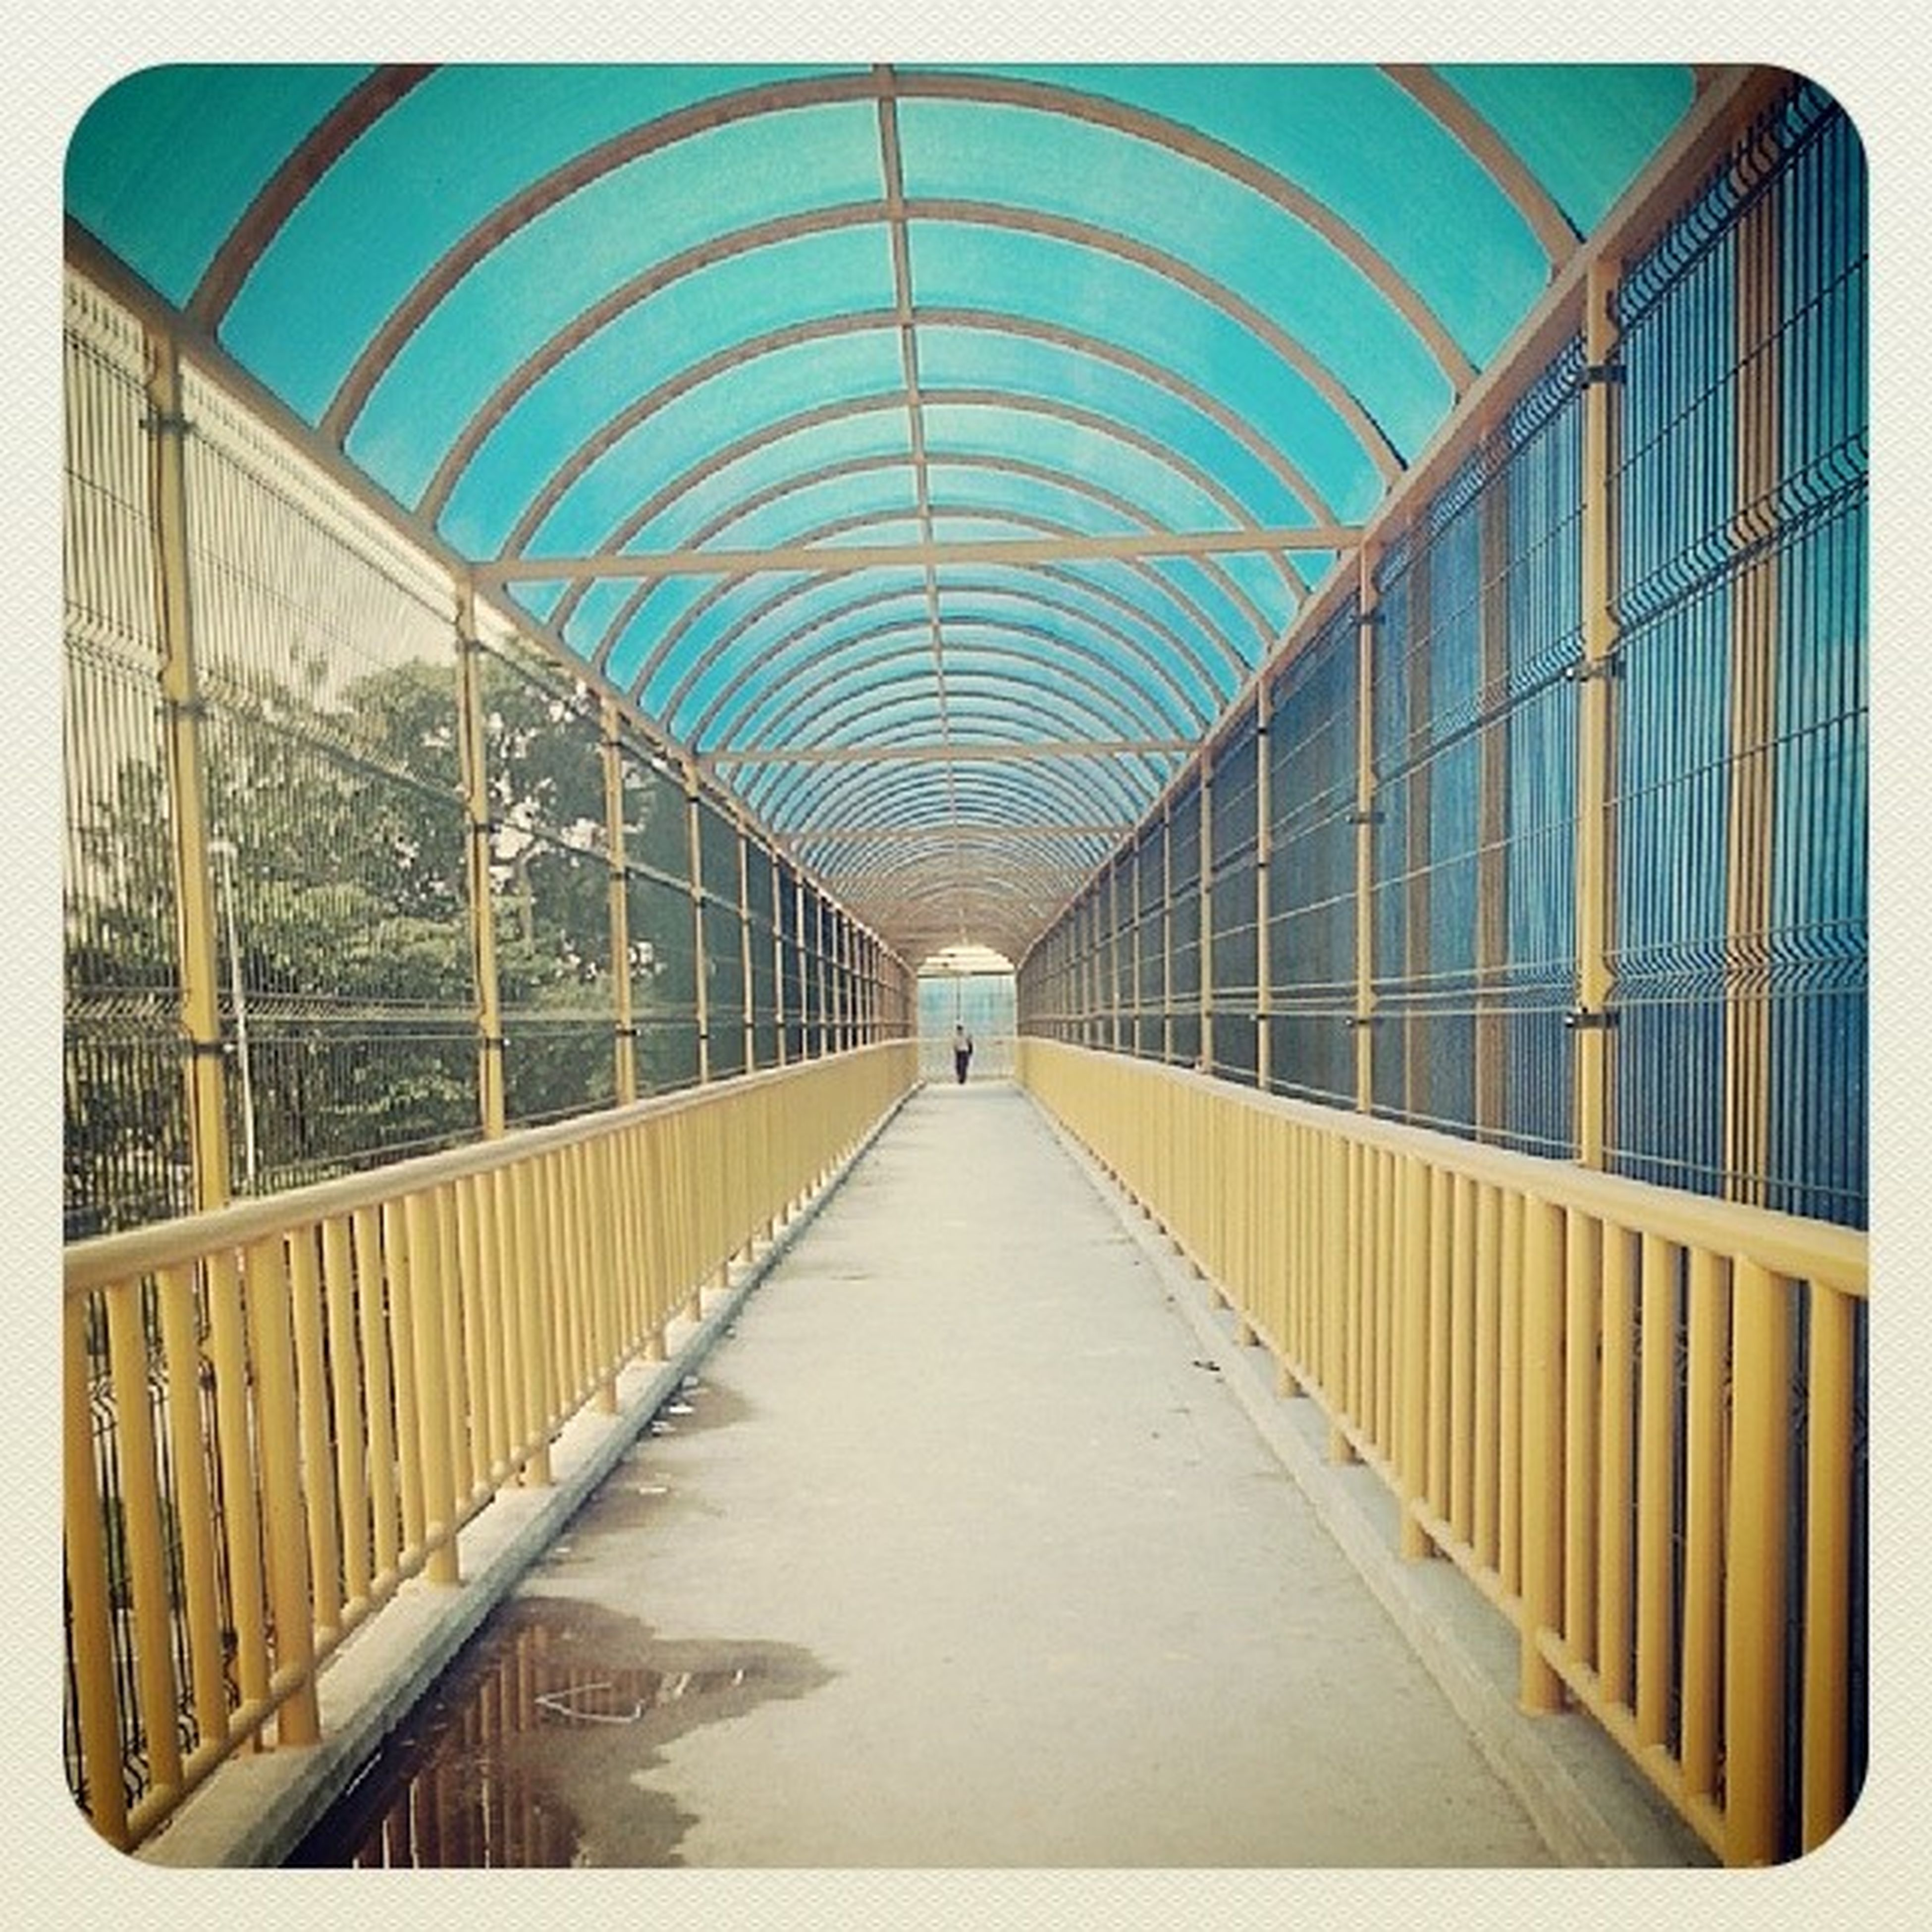 architecture, built structure, the way forward, transfer print, diminishing perspective, vanishing point, auto post production filter, railing, indoors, empty, modern, connection, ceiling, day, footbridge, bridge - man made structure, incidental people, walkway, building exterior, metal